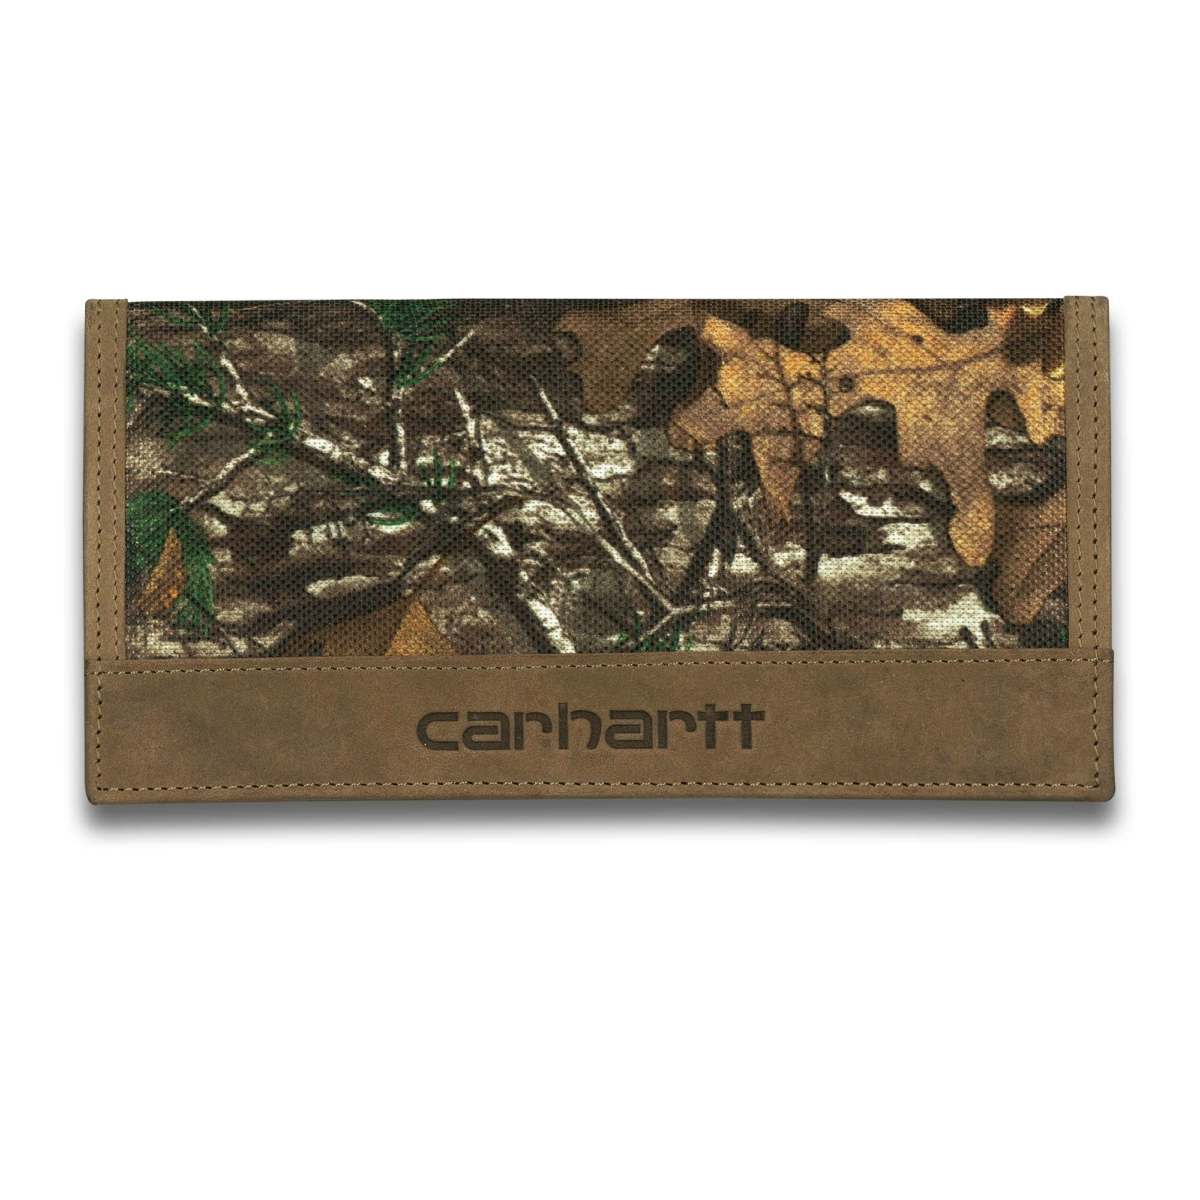 Carhartt Realtree Rodeo Wallet Realtree Xtra USA - GOOFASH - Mens WALLETS